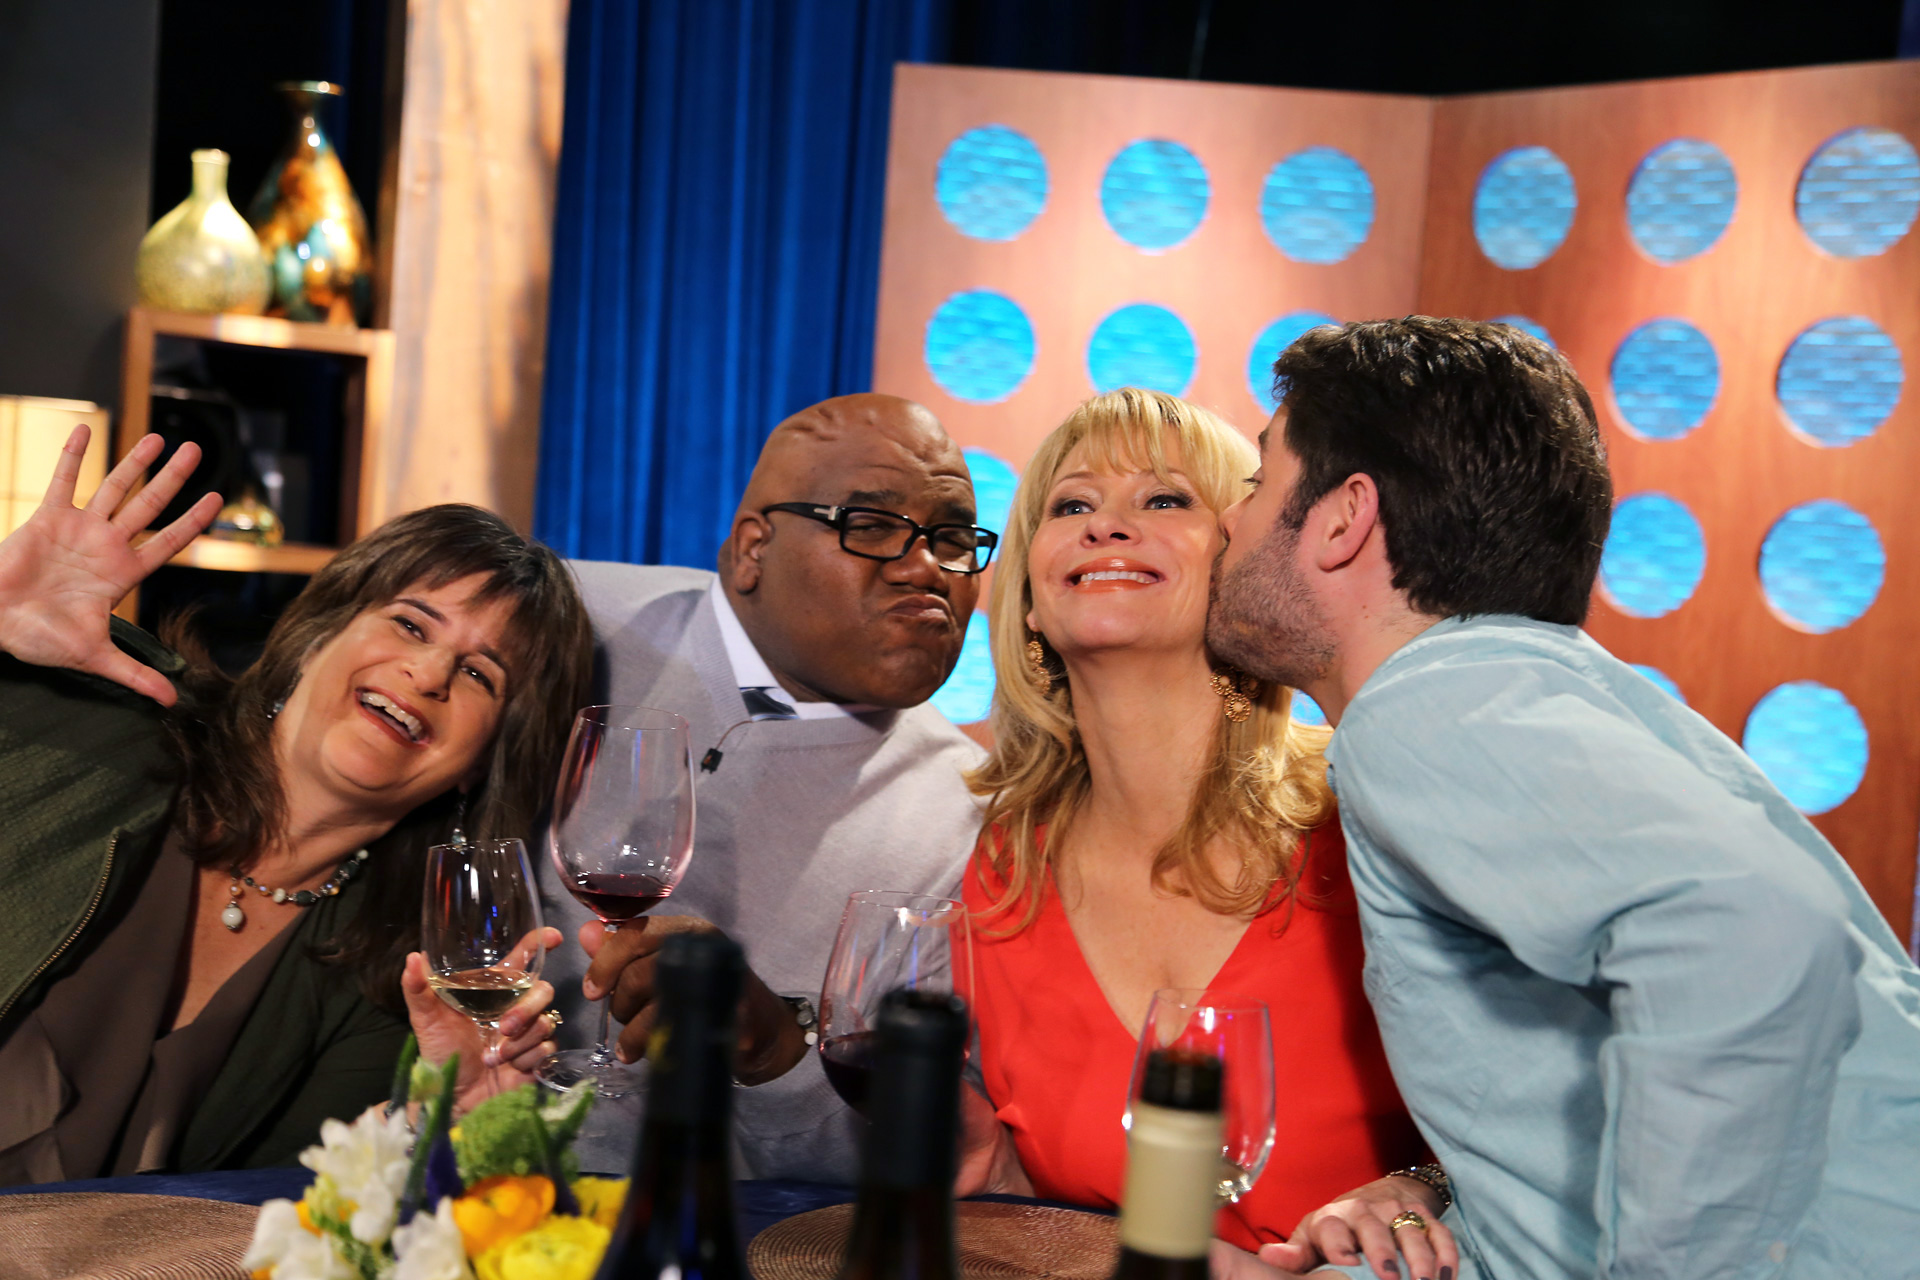 Host Leslie Sbrocco and guests on the set of the episode 5 of season 11.